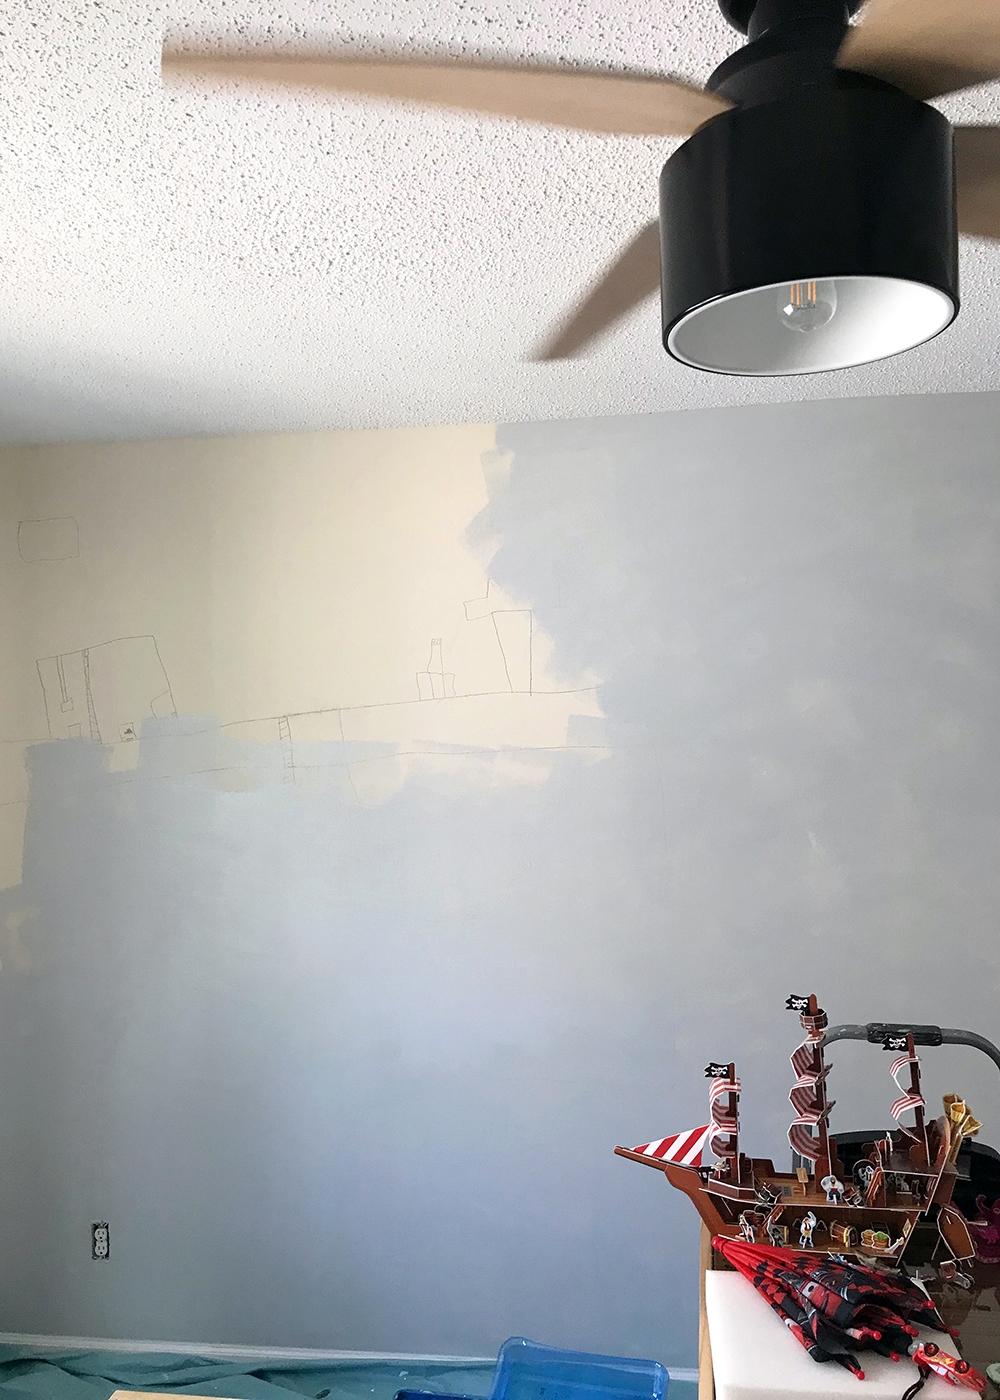 Sherwin-Williams paint covered his drawing in 1 coat